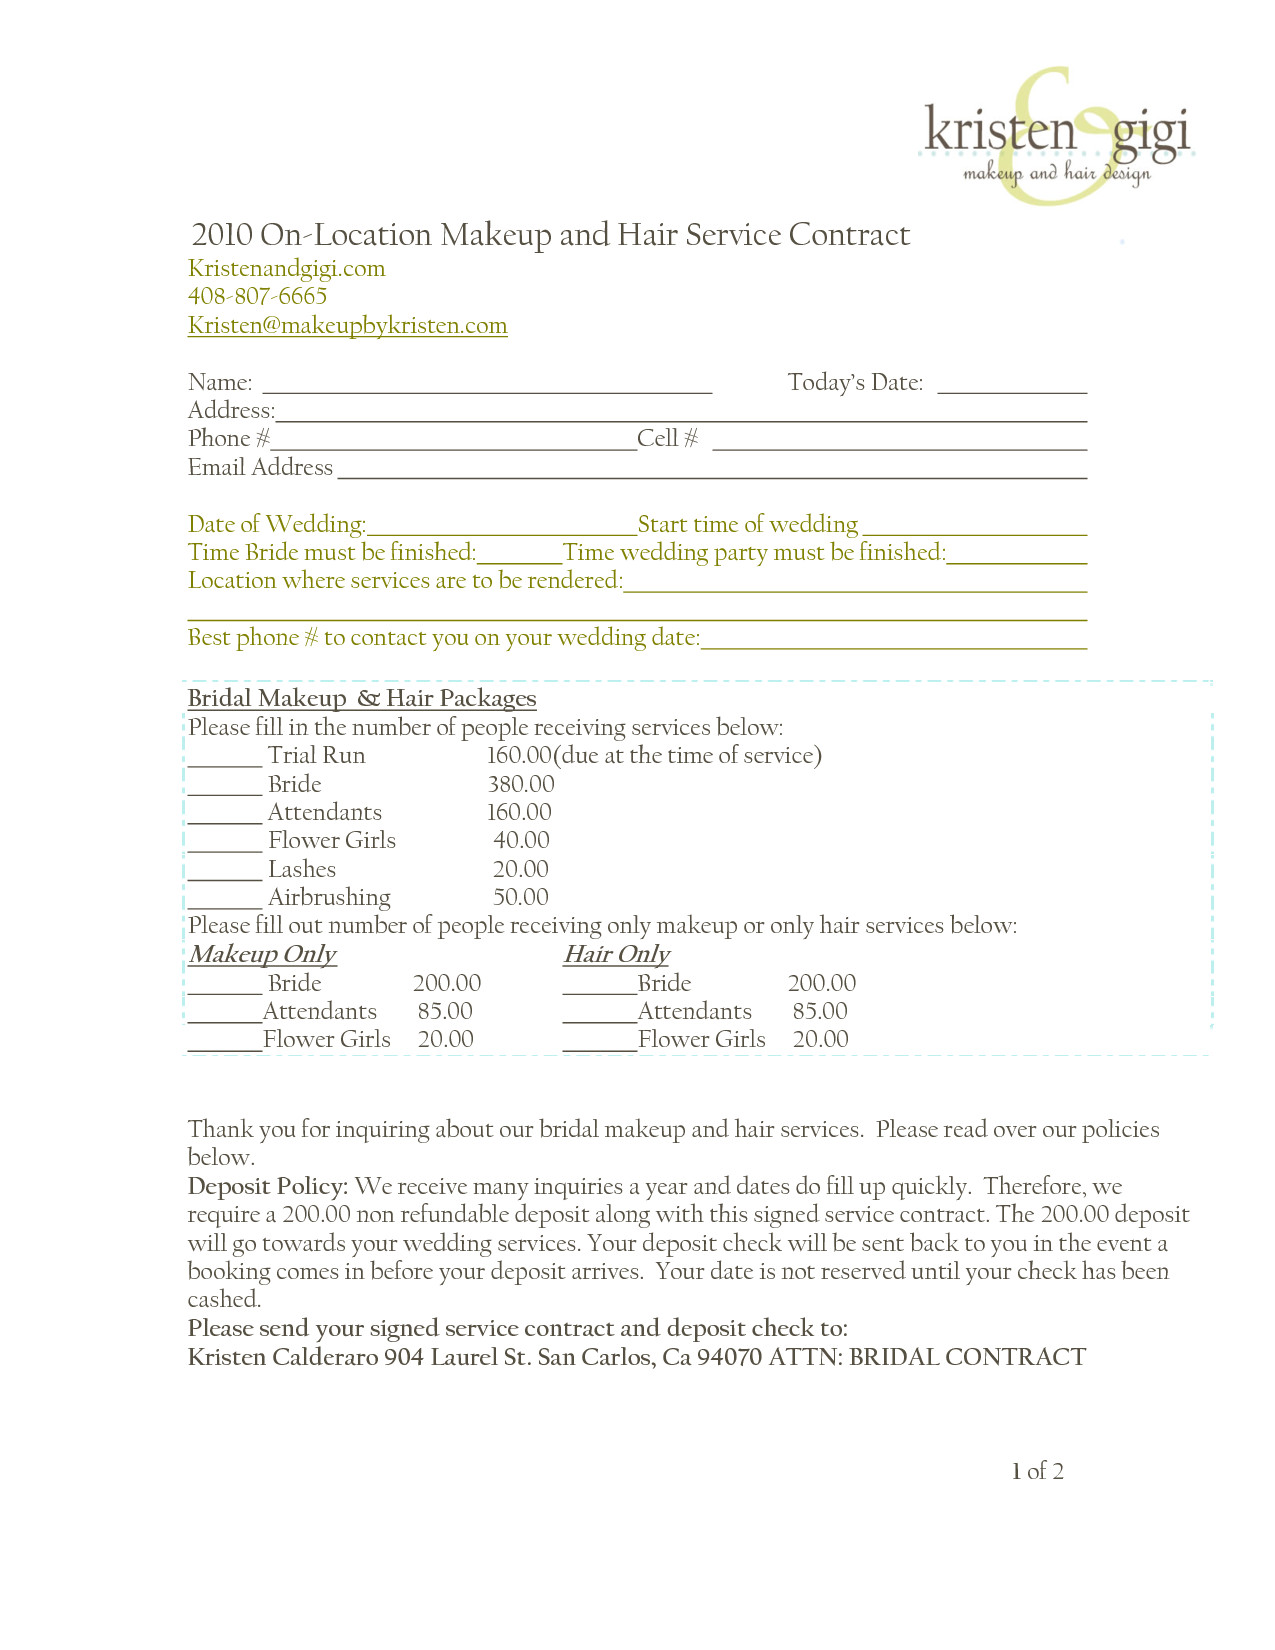 Freelance Makeup Artist Contract Template Bridalhaircotract